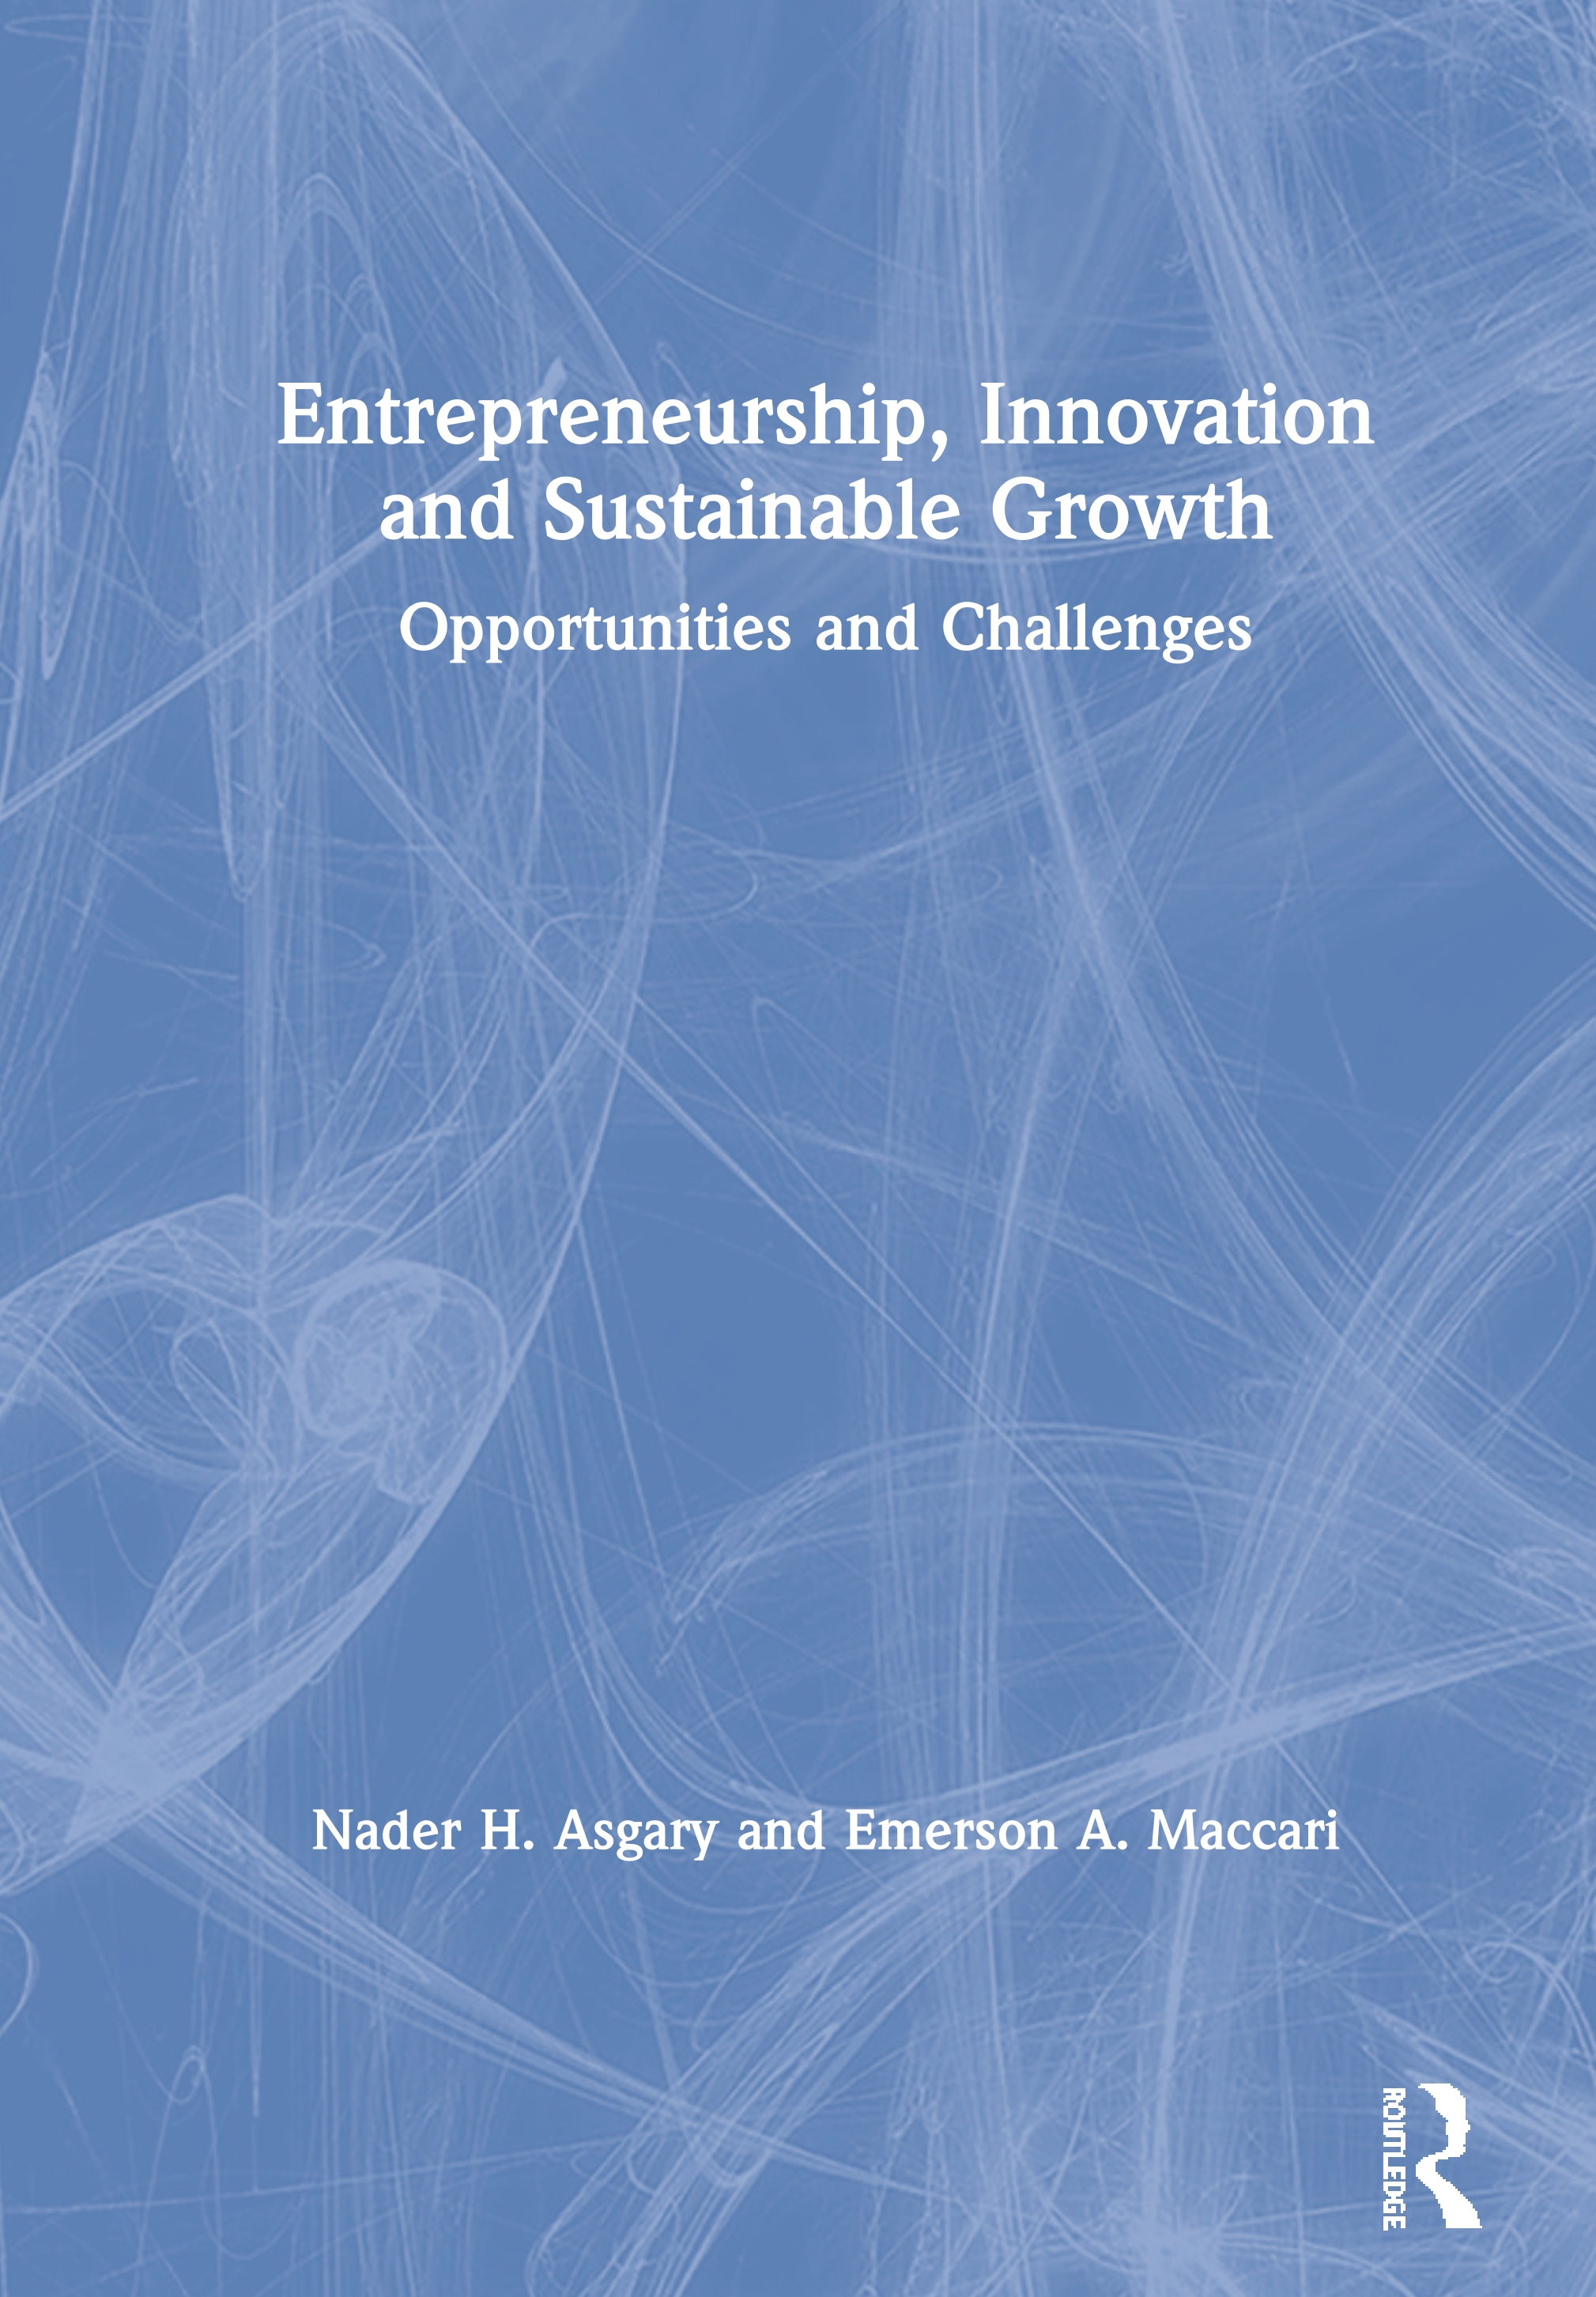 Entrepreneurship, Innovation and Sustainable Growth: Opportunities and Challenges book cover